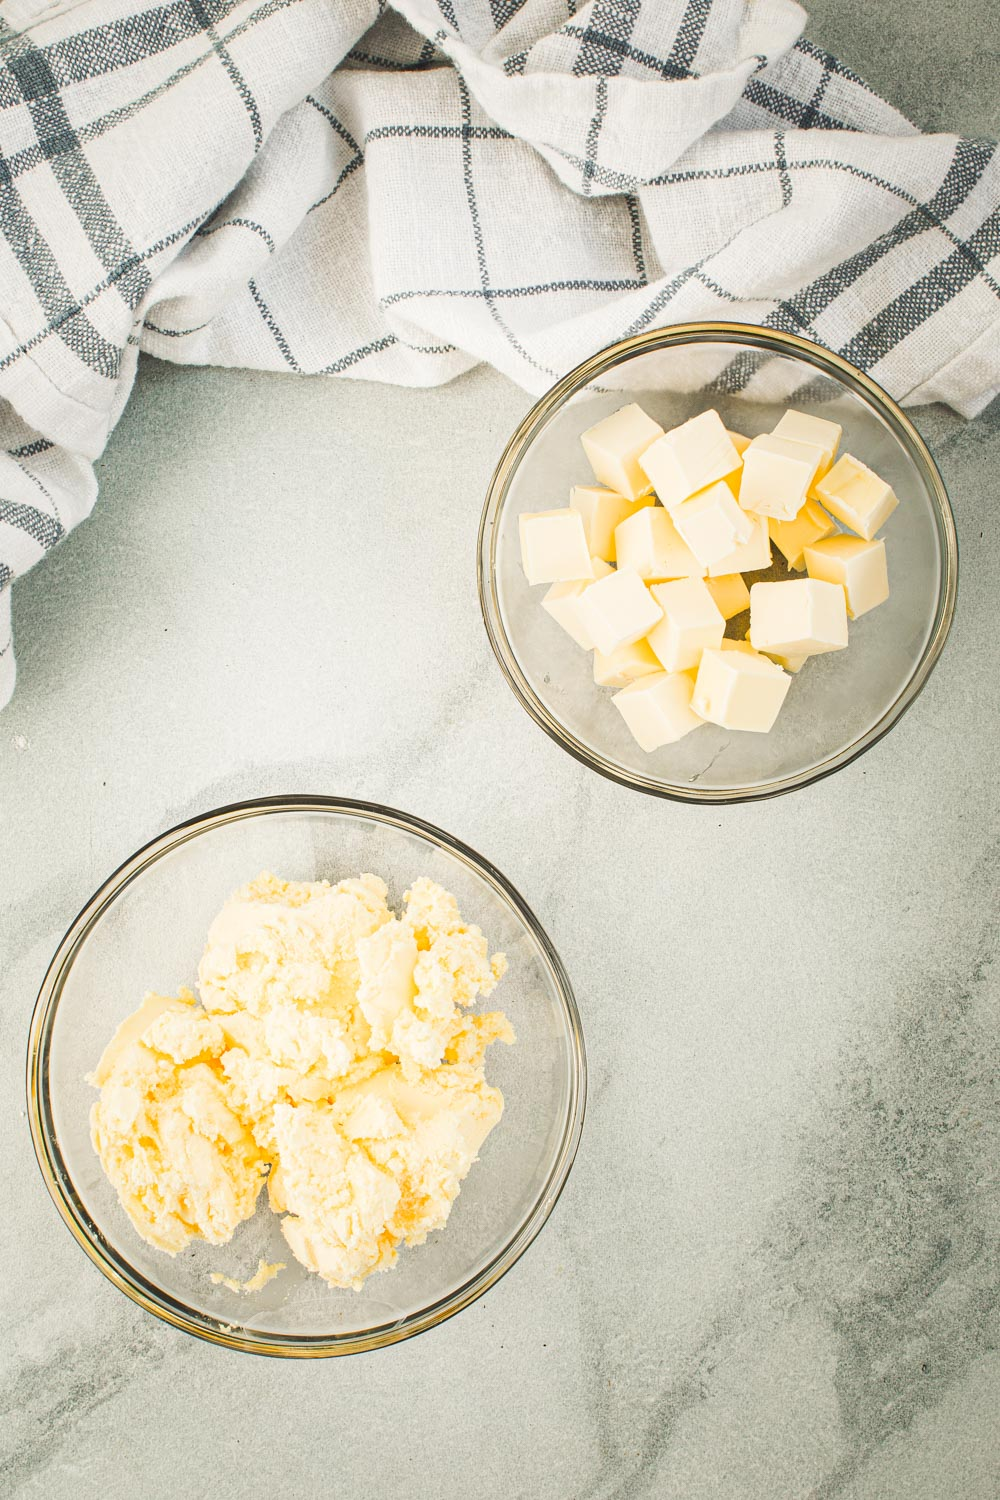 Cold butter cubes and shortening in small glass bowls.